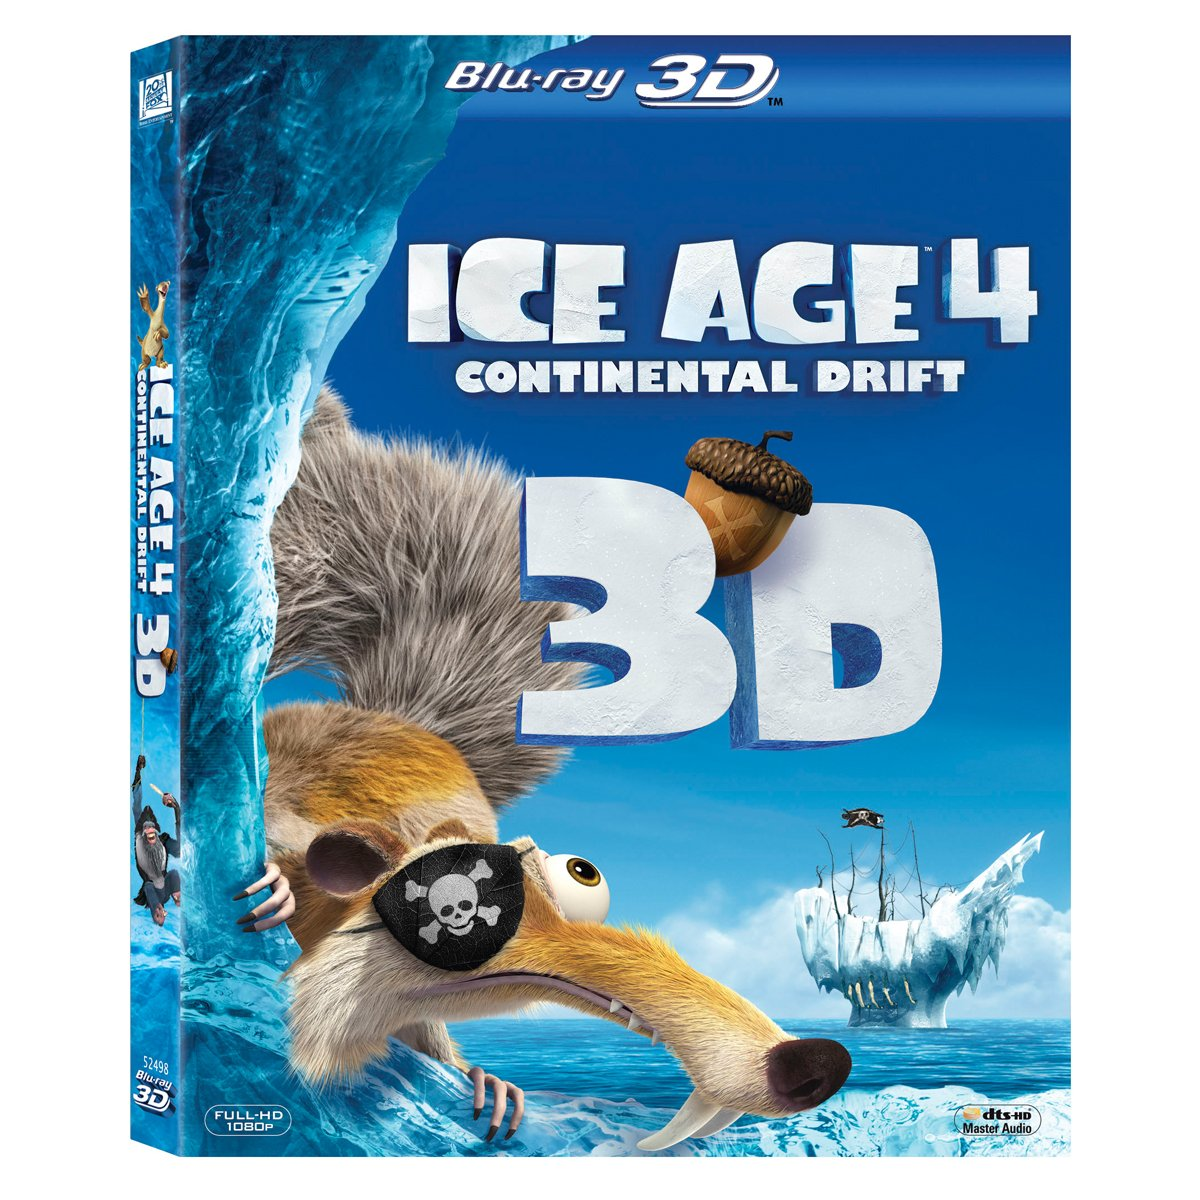 Flat 33% off On Popular 3D blu-ray movies By Amazon